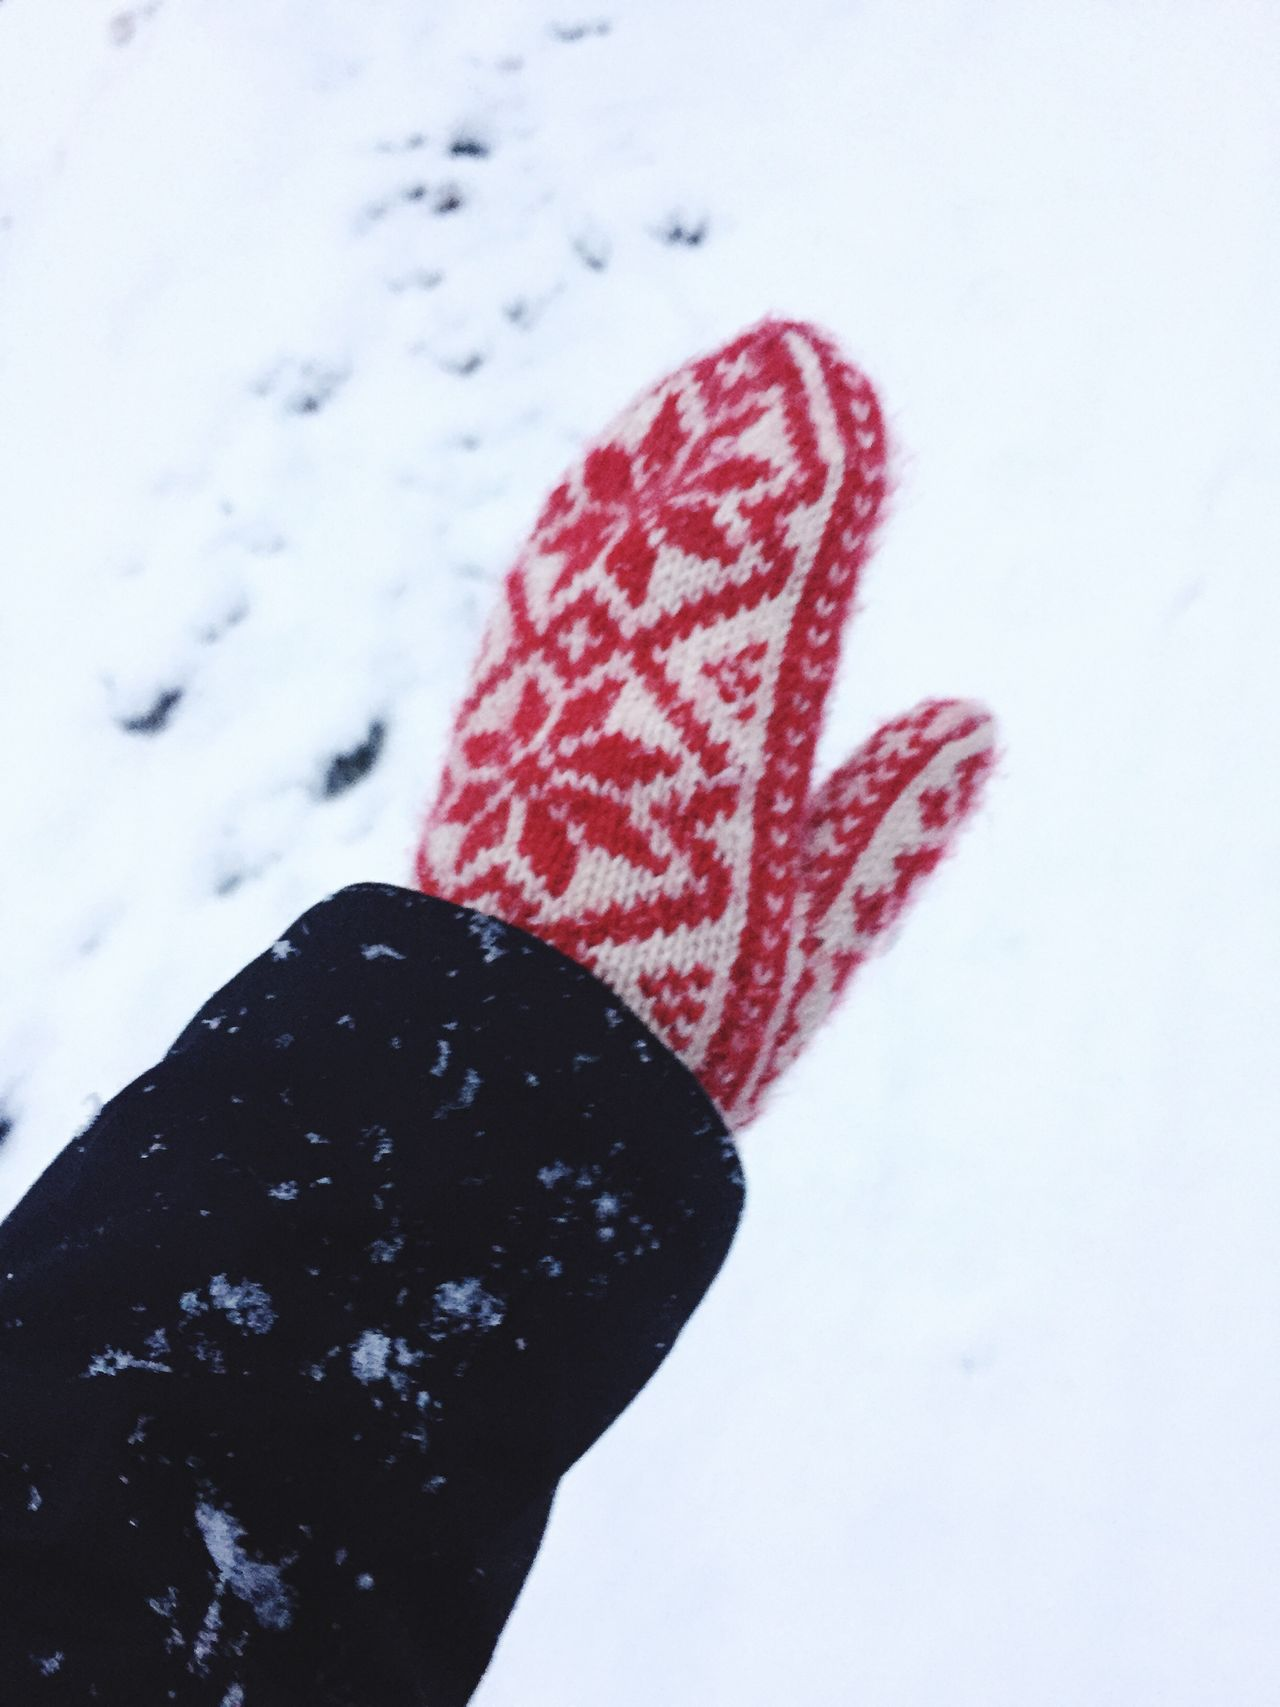 Cropped image of hand wearing gloves during winter